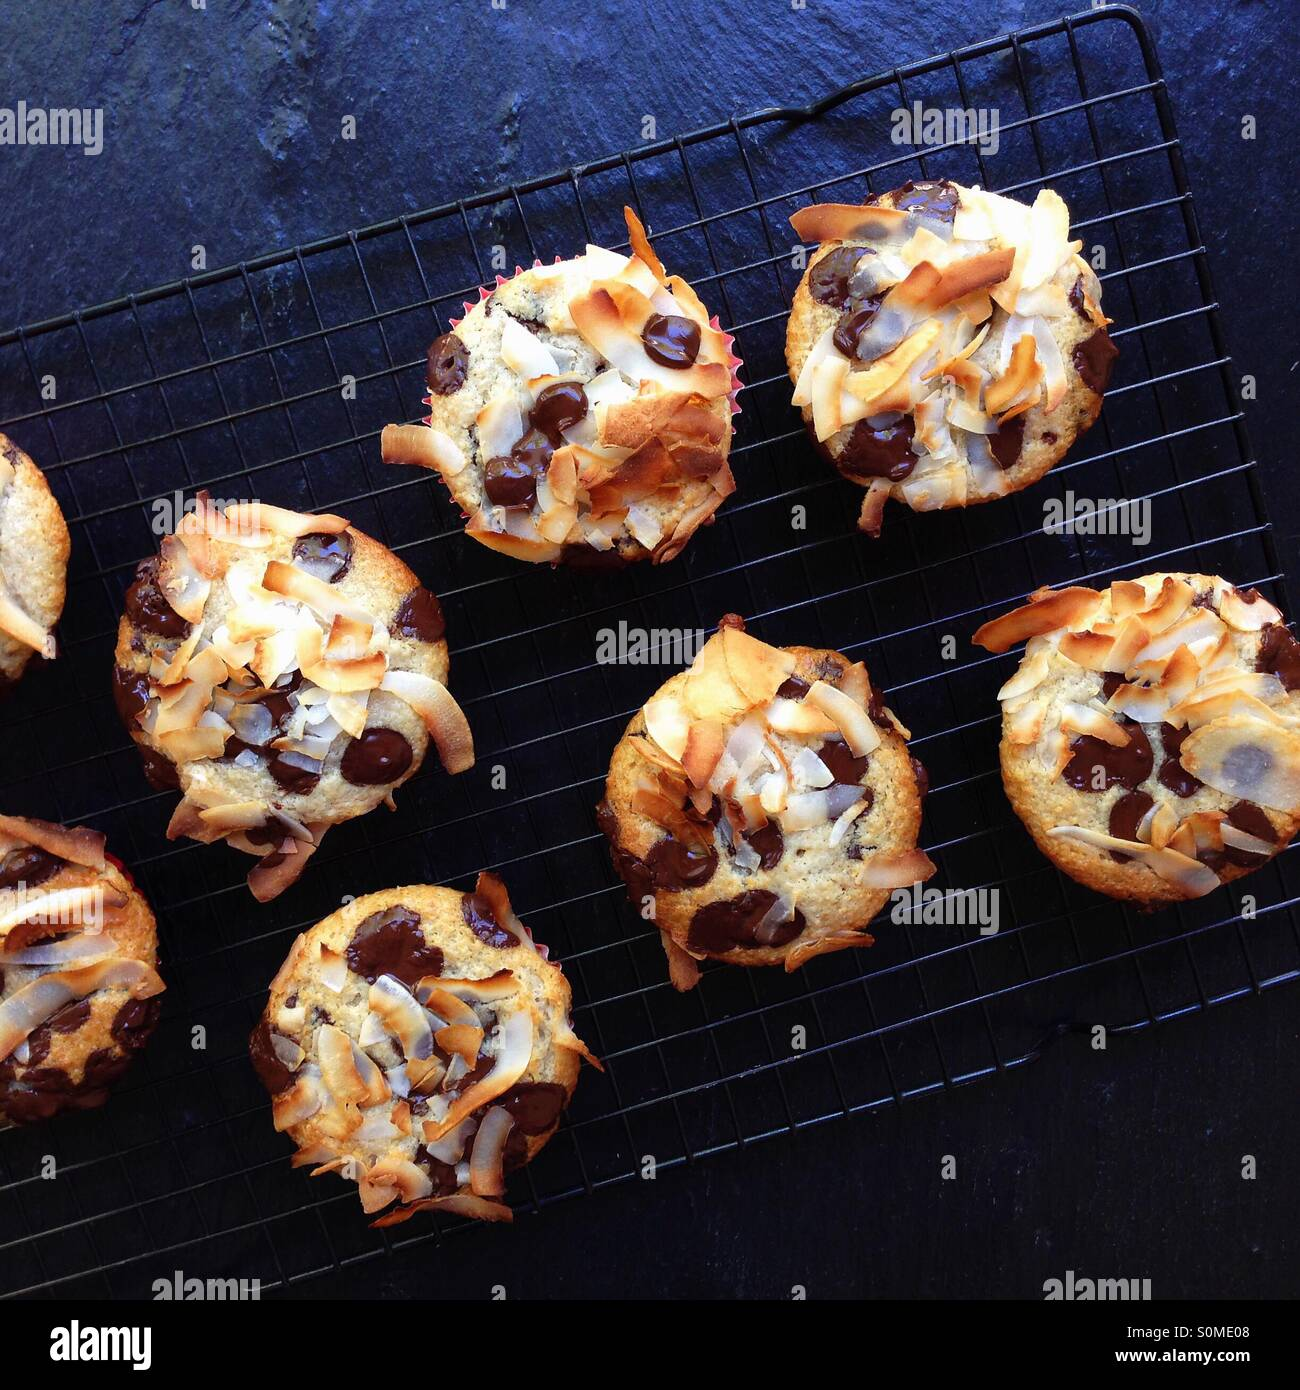 Coconut and Chocolate Chip Muffins - Stock Image